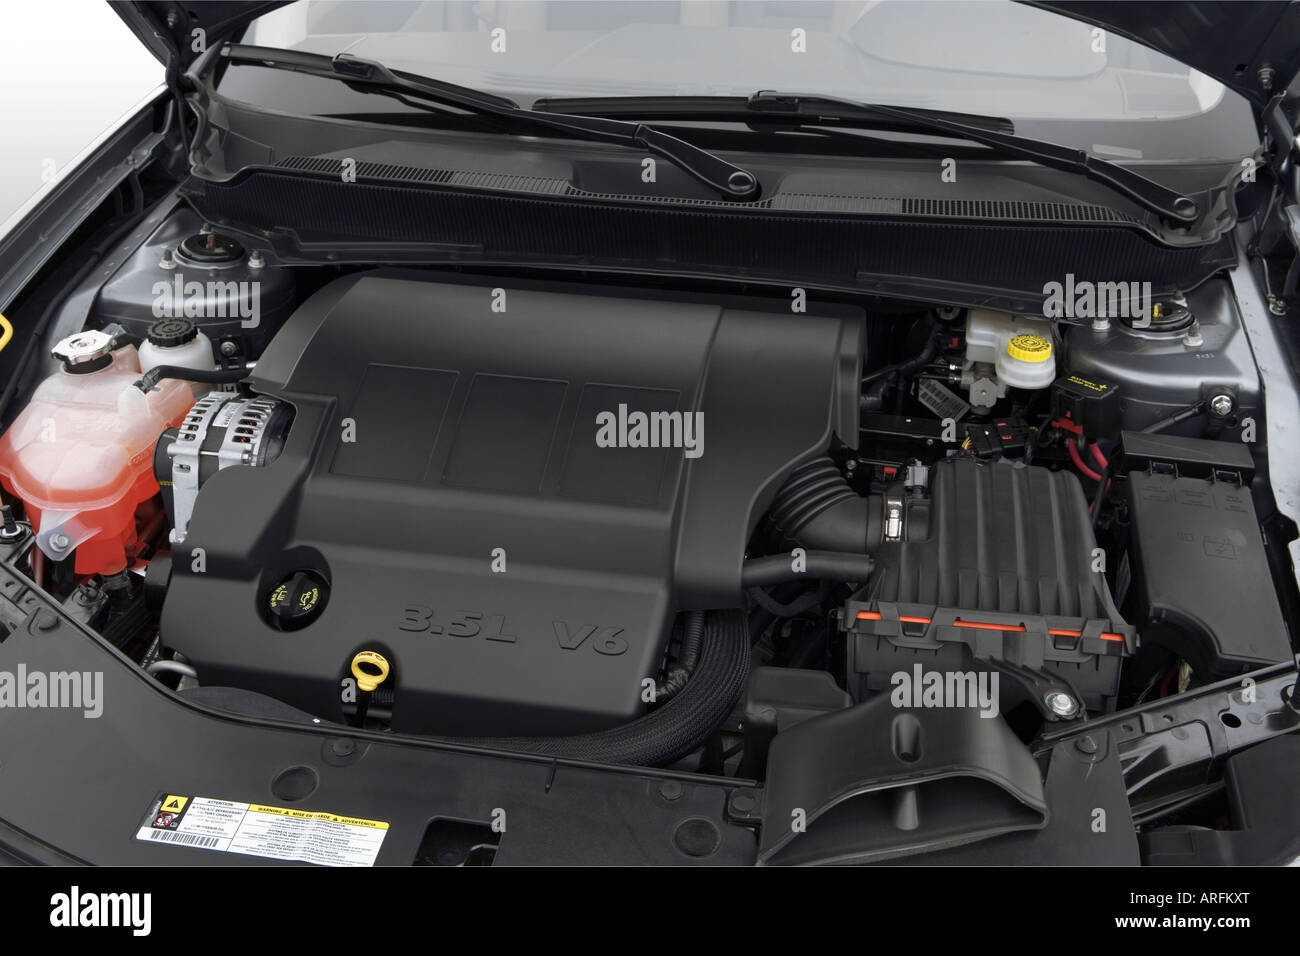 2008 Dodge Avenger R T In Silver Engine Stock Photo Alamy